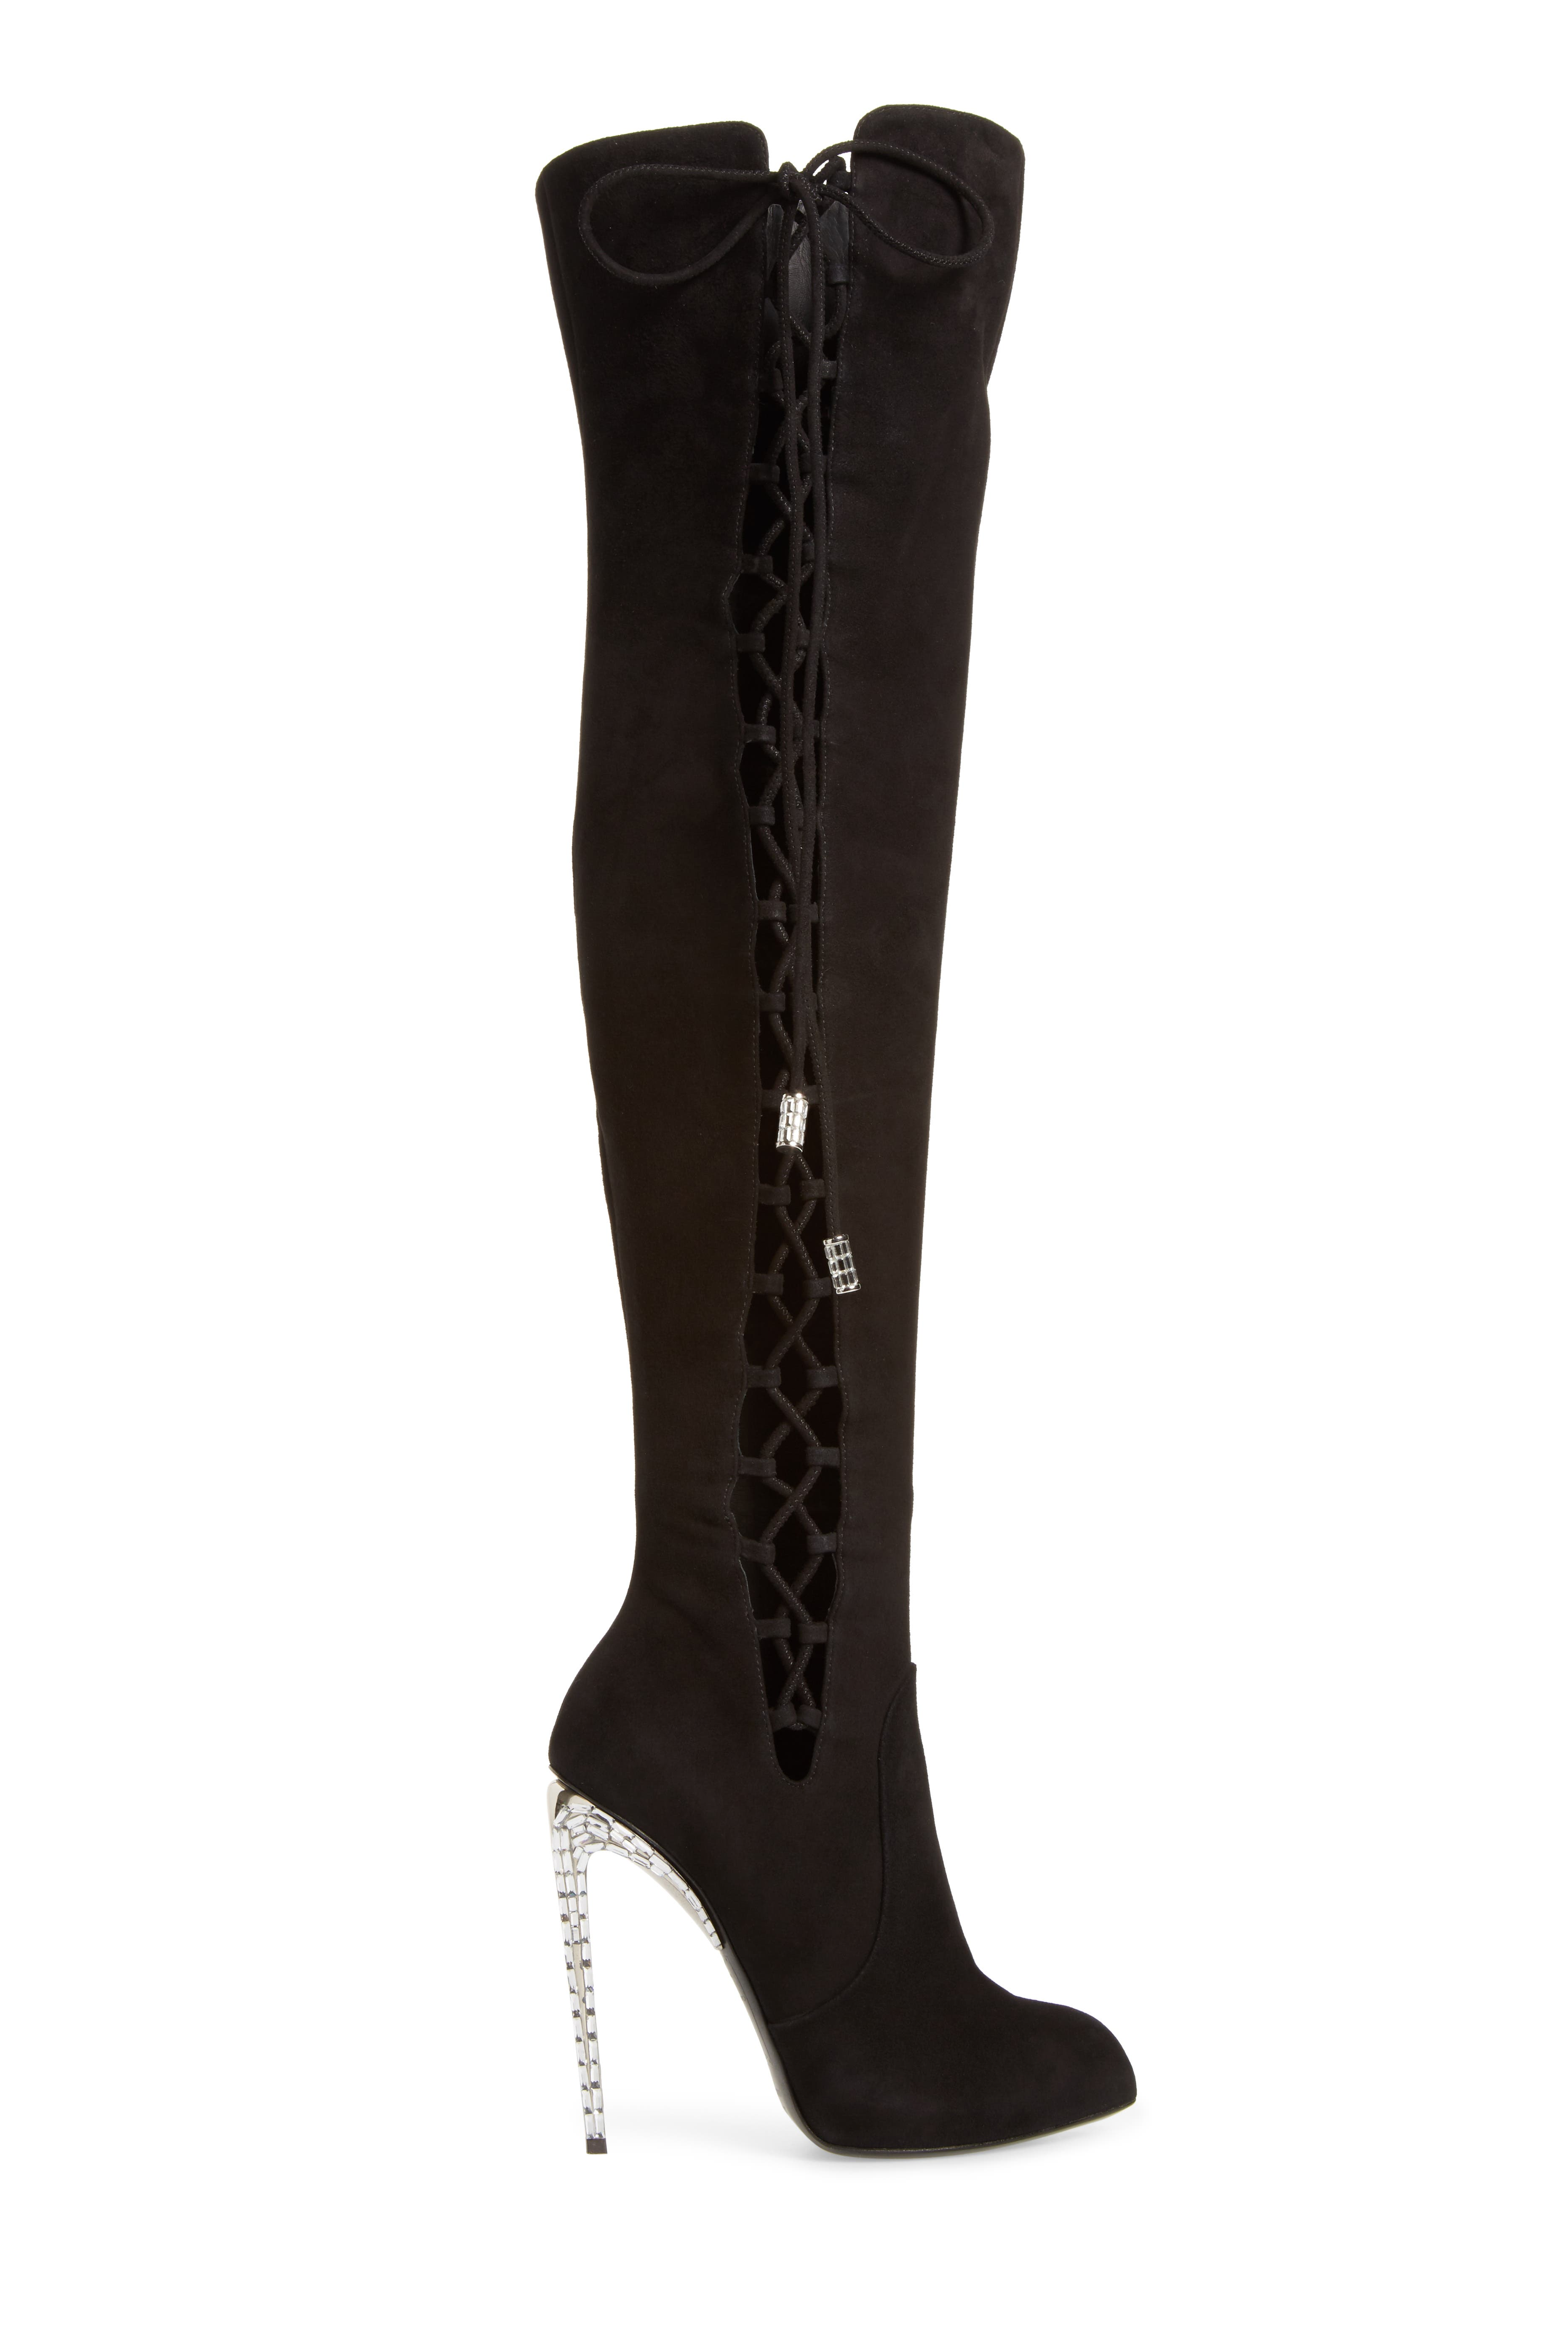 Giuseppe for Jennifer Lopez Lace-Up Over the Knee Boot,                             Alternate thumbnail 3, color,                             Black